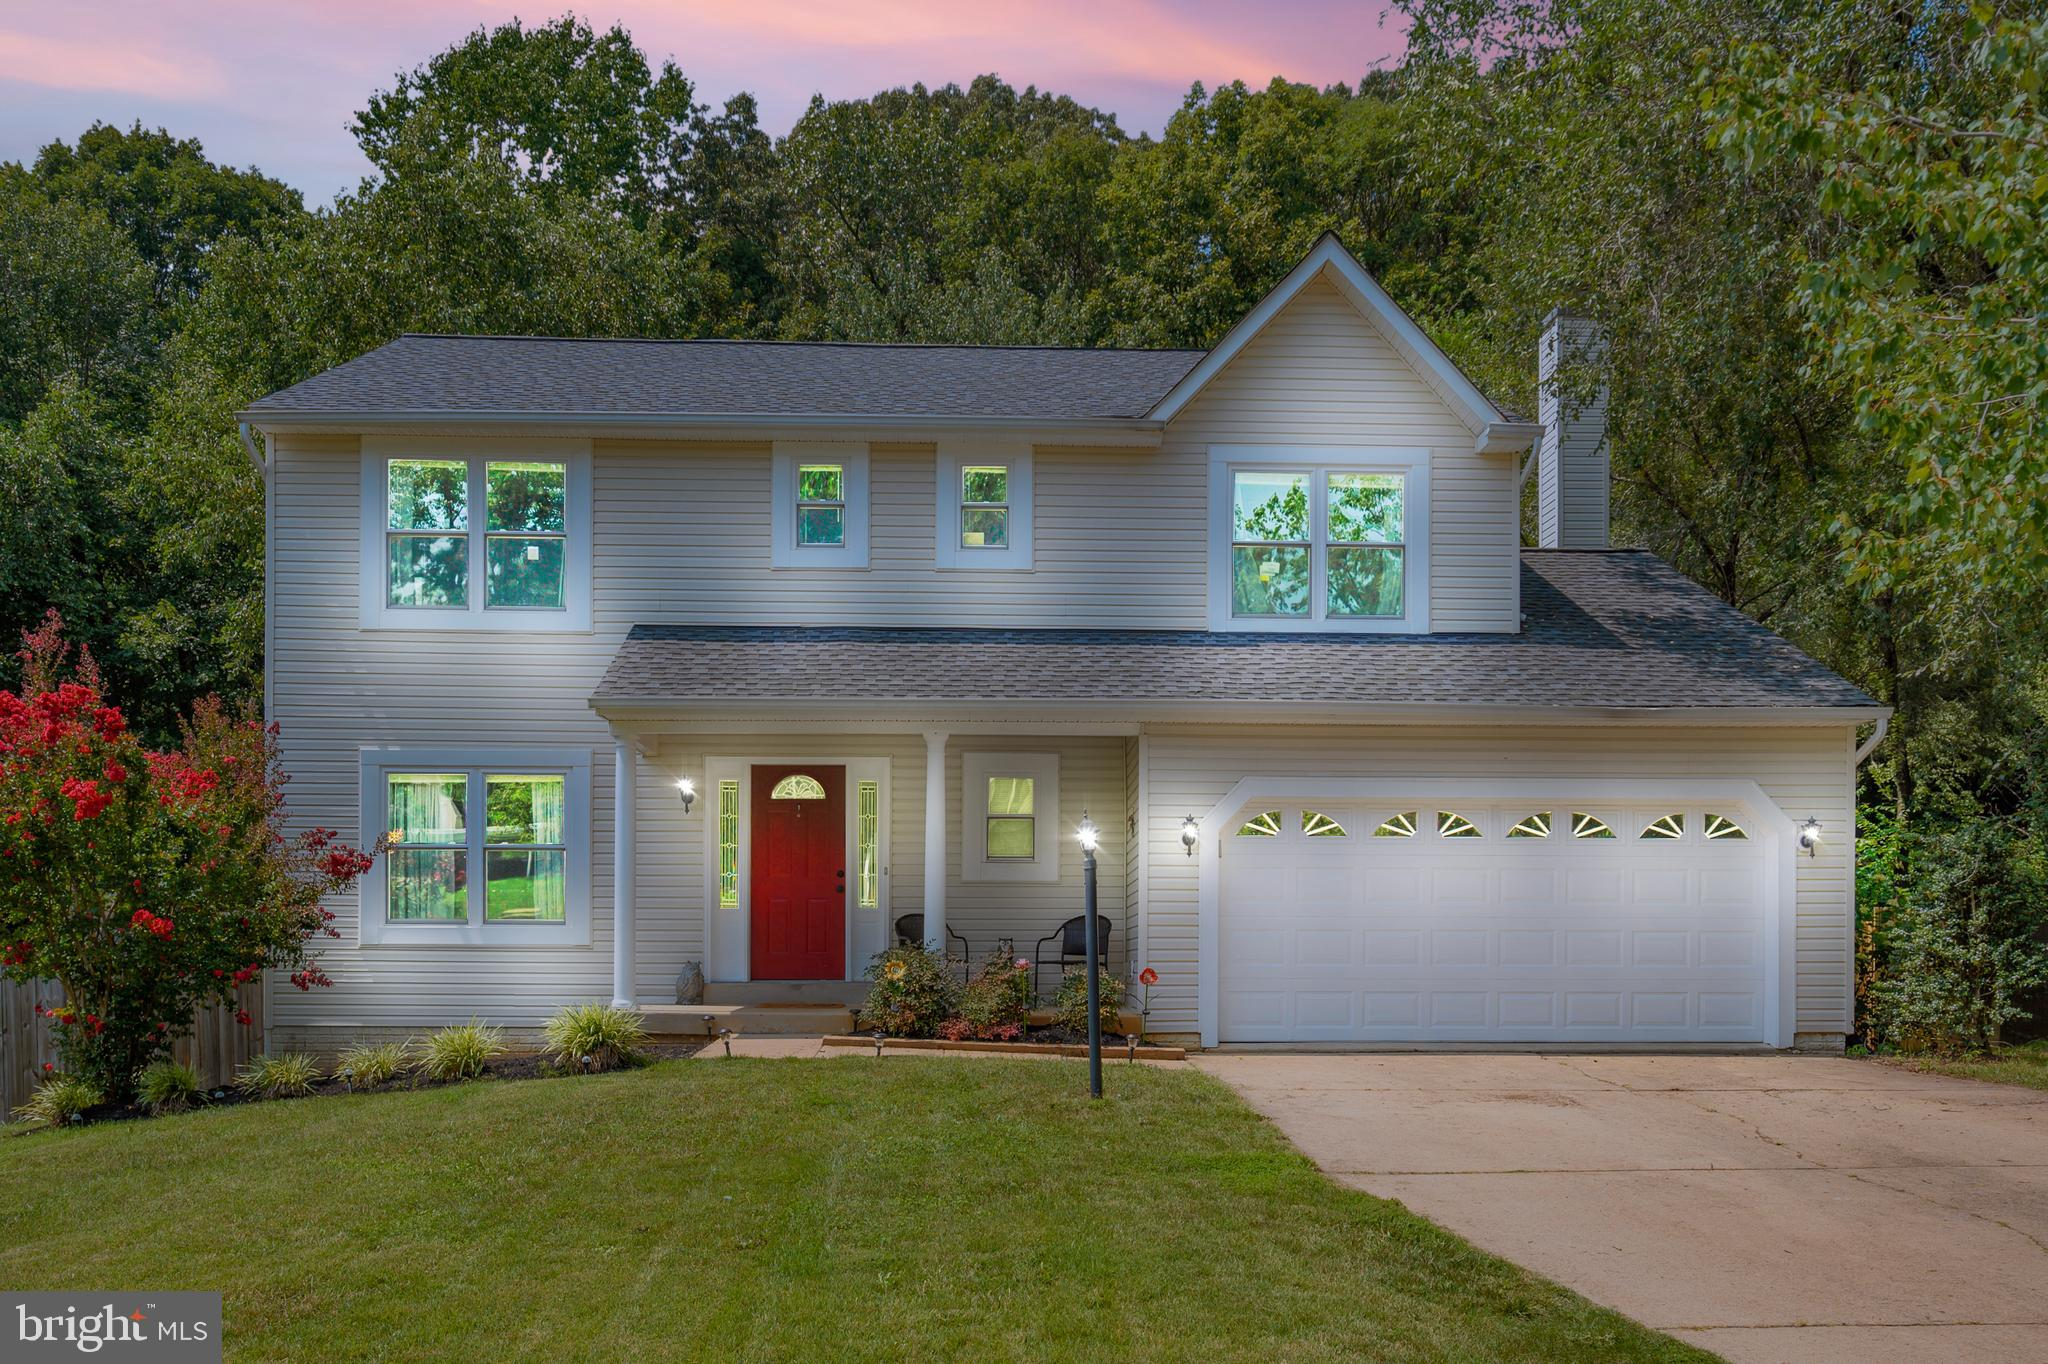 Welcome Home! Beautiful Colonial in a great location! Just minutes to Quantico Marine Corp Base, I95, shopping, and restaurants, yet provides plenty of peace and quiet. 4 bedrooms, 3.5 bathrooms and a  2 car garage .You enter the home on the main level greeted by a bright and spacious foyer.  Pretty as a picture with an updated kitchen, custom island, and stainless steel appliances.  Fully finished basement with bathroom. Fenced in private yard. Wonderful community with easy commute to major locations rage in sought after Stonebridge at Widewater.